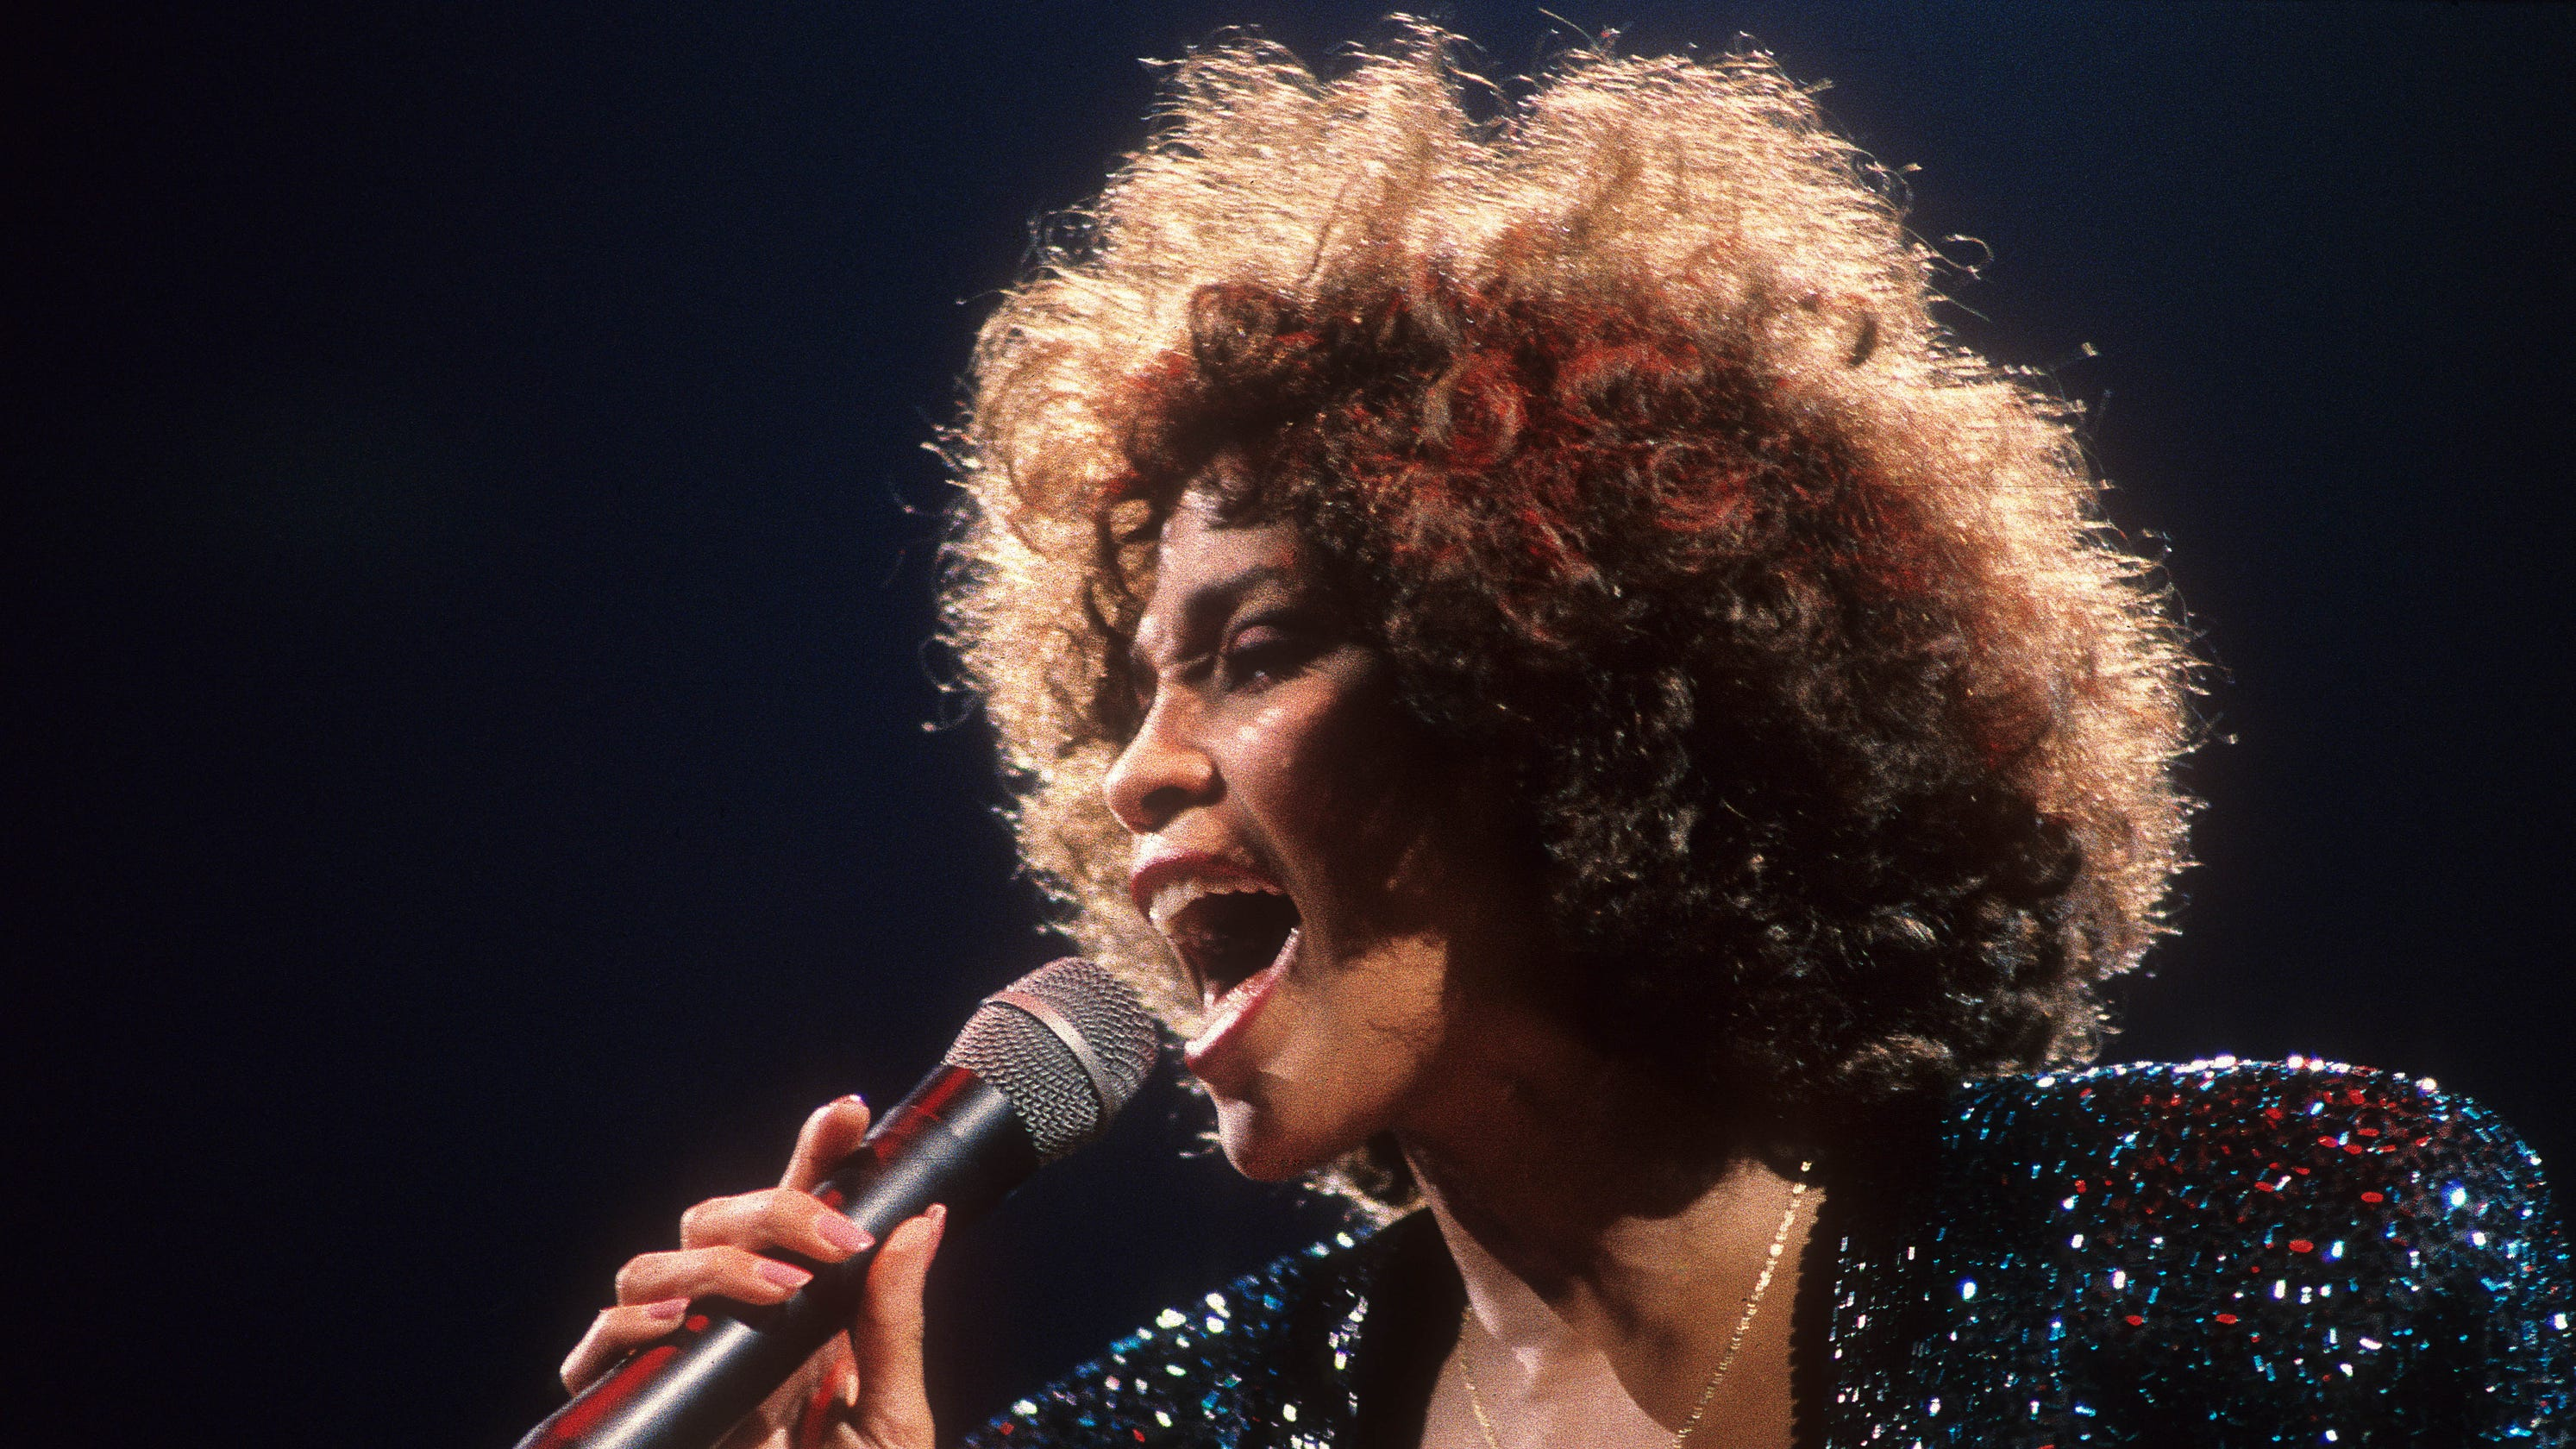 Whitney Houston's 'Higher Love' cover remixed by Kygo released